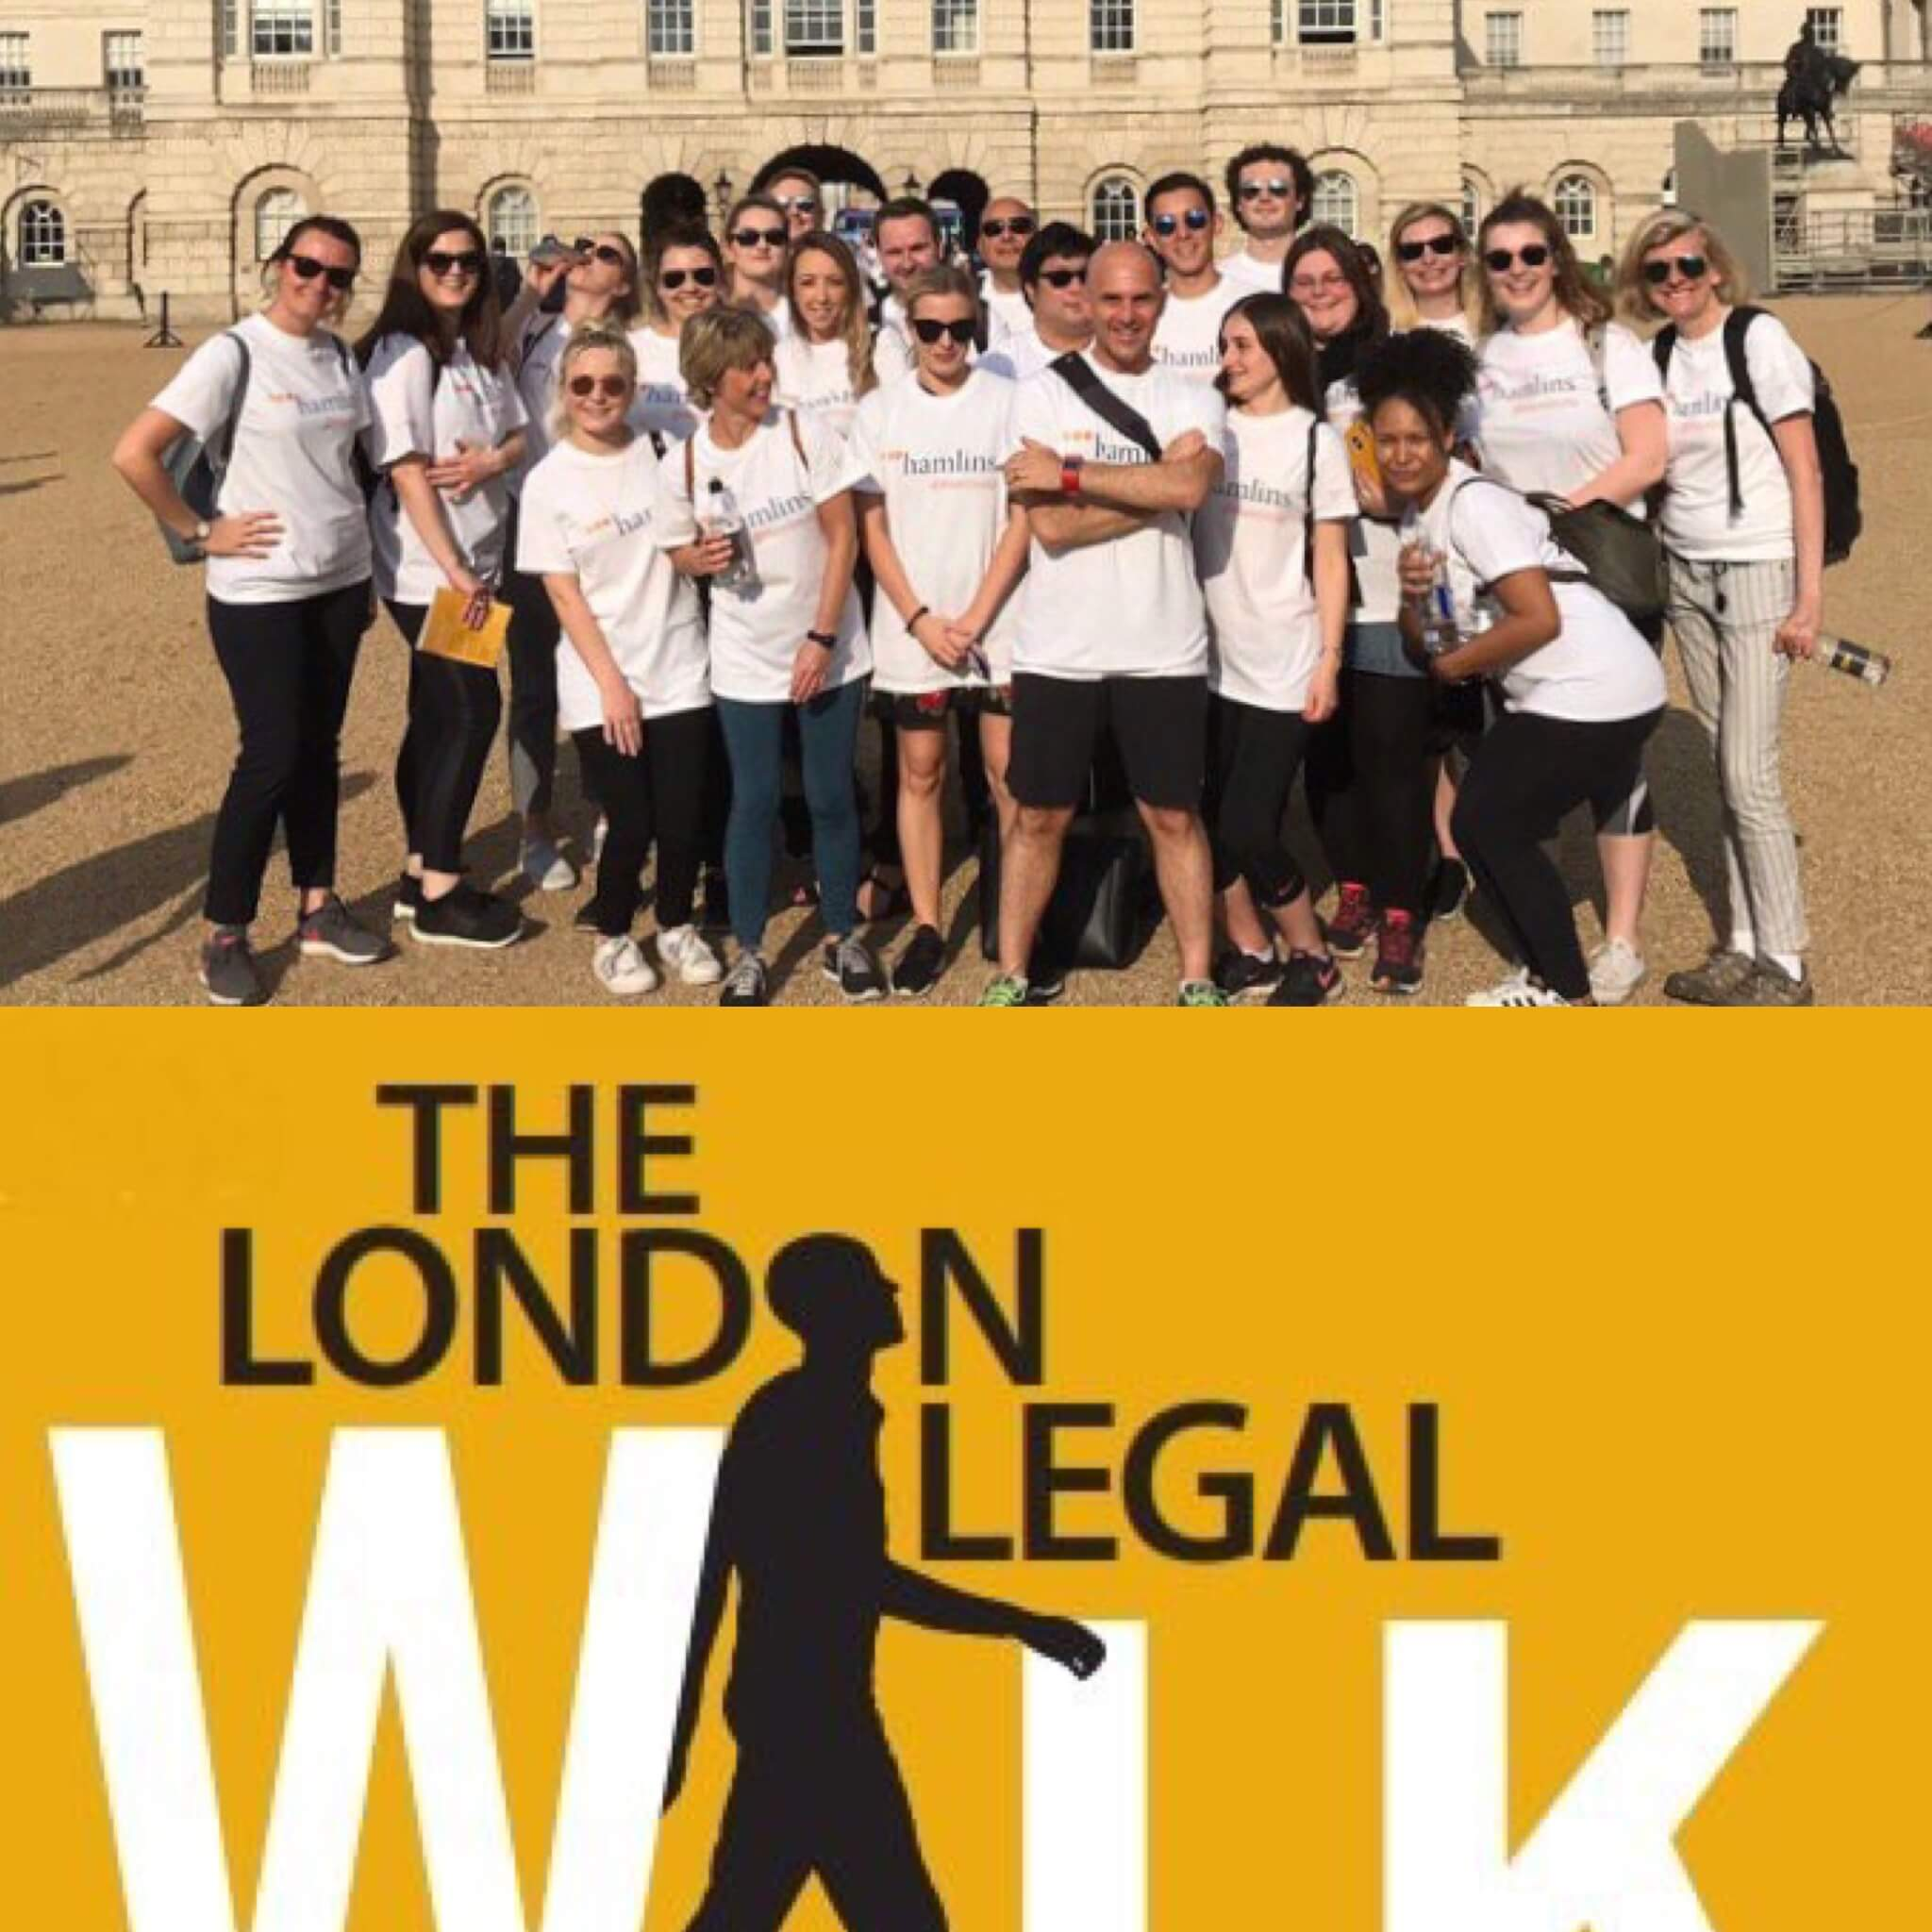 Hamlins raise money for London Legal Support Trust in 10km Legal Walk, 21st May 2018